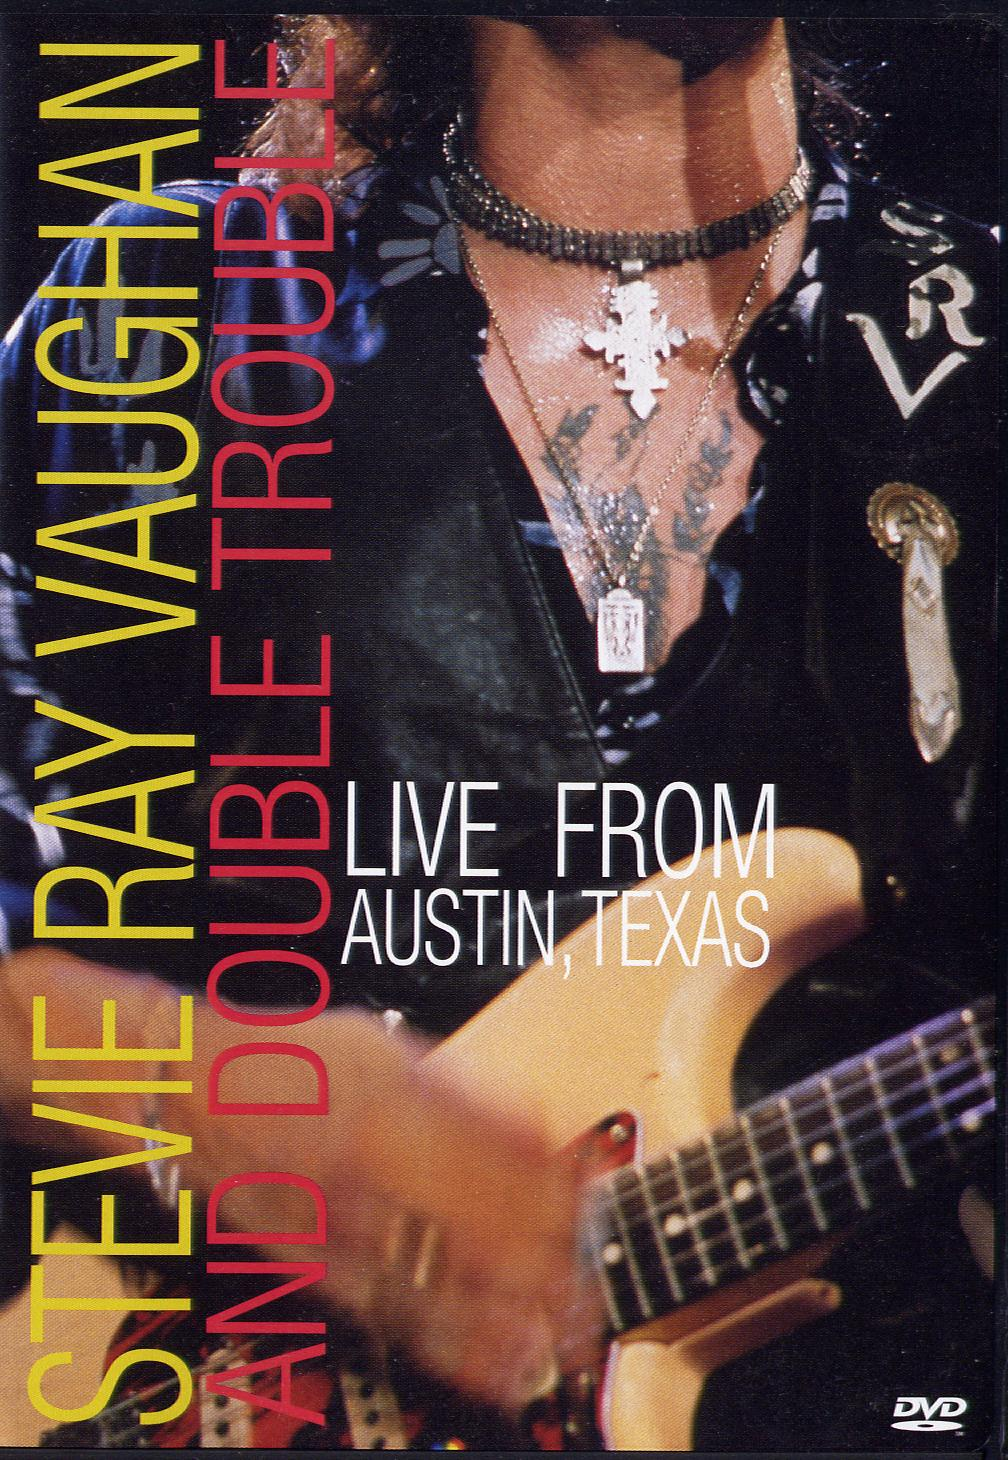 Stevie Ray Vaughan - CD: Live from Carnegie Hall + DVD: Live from Austin Texas (1984 + 1983 & 89)